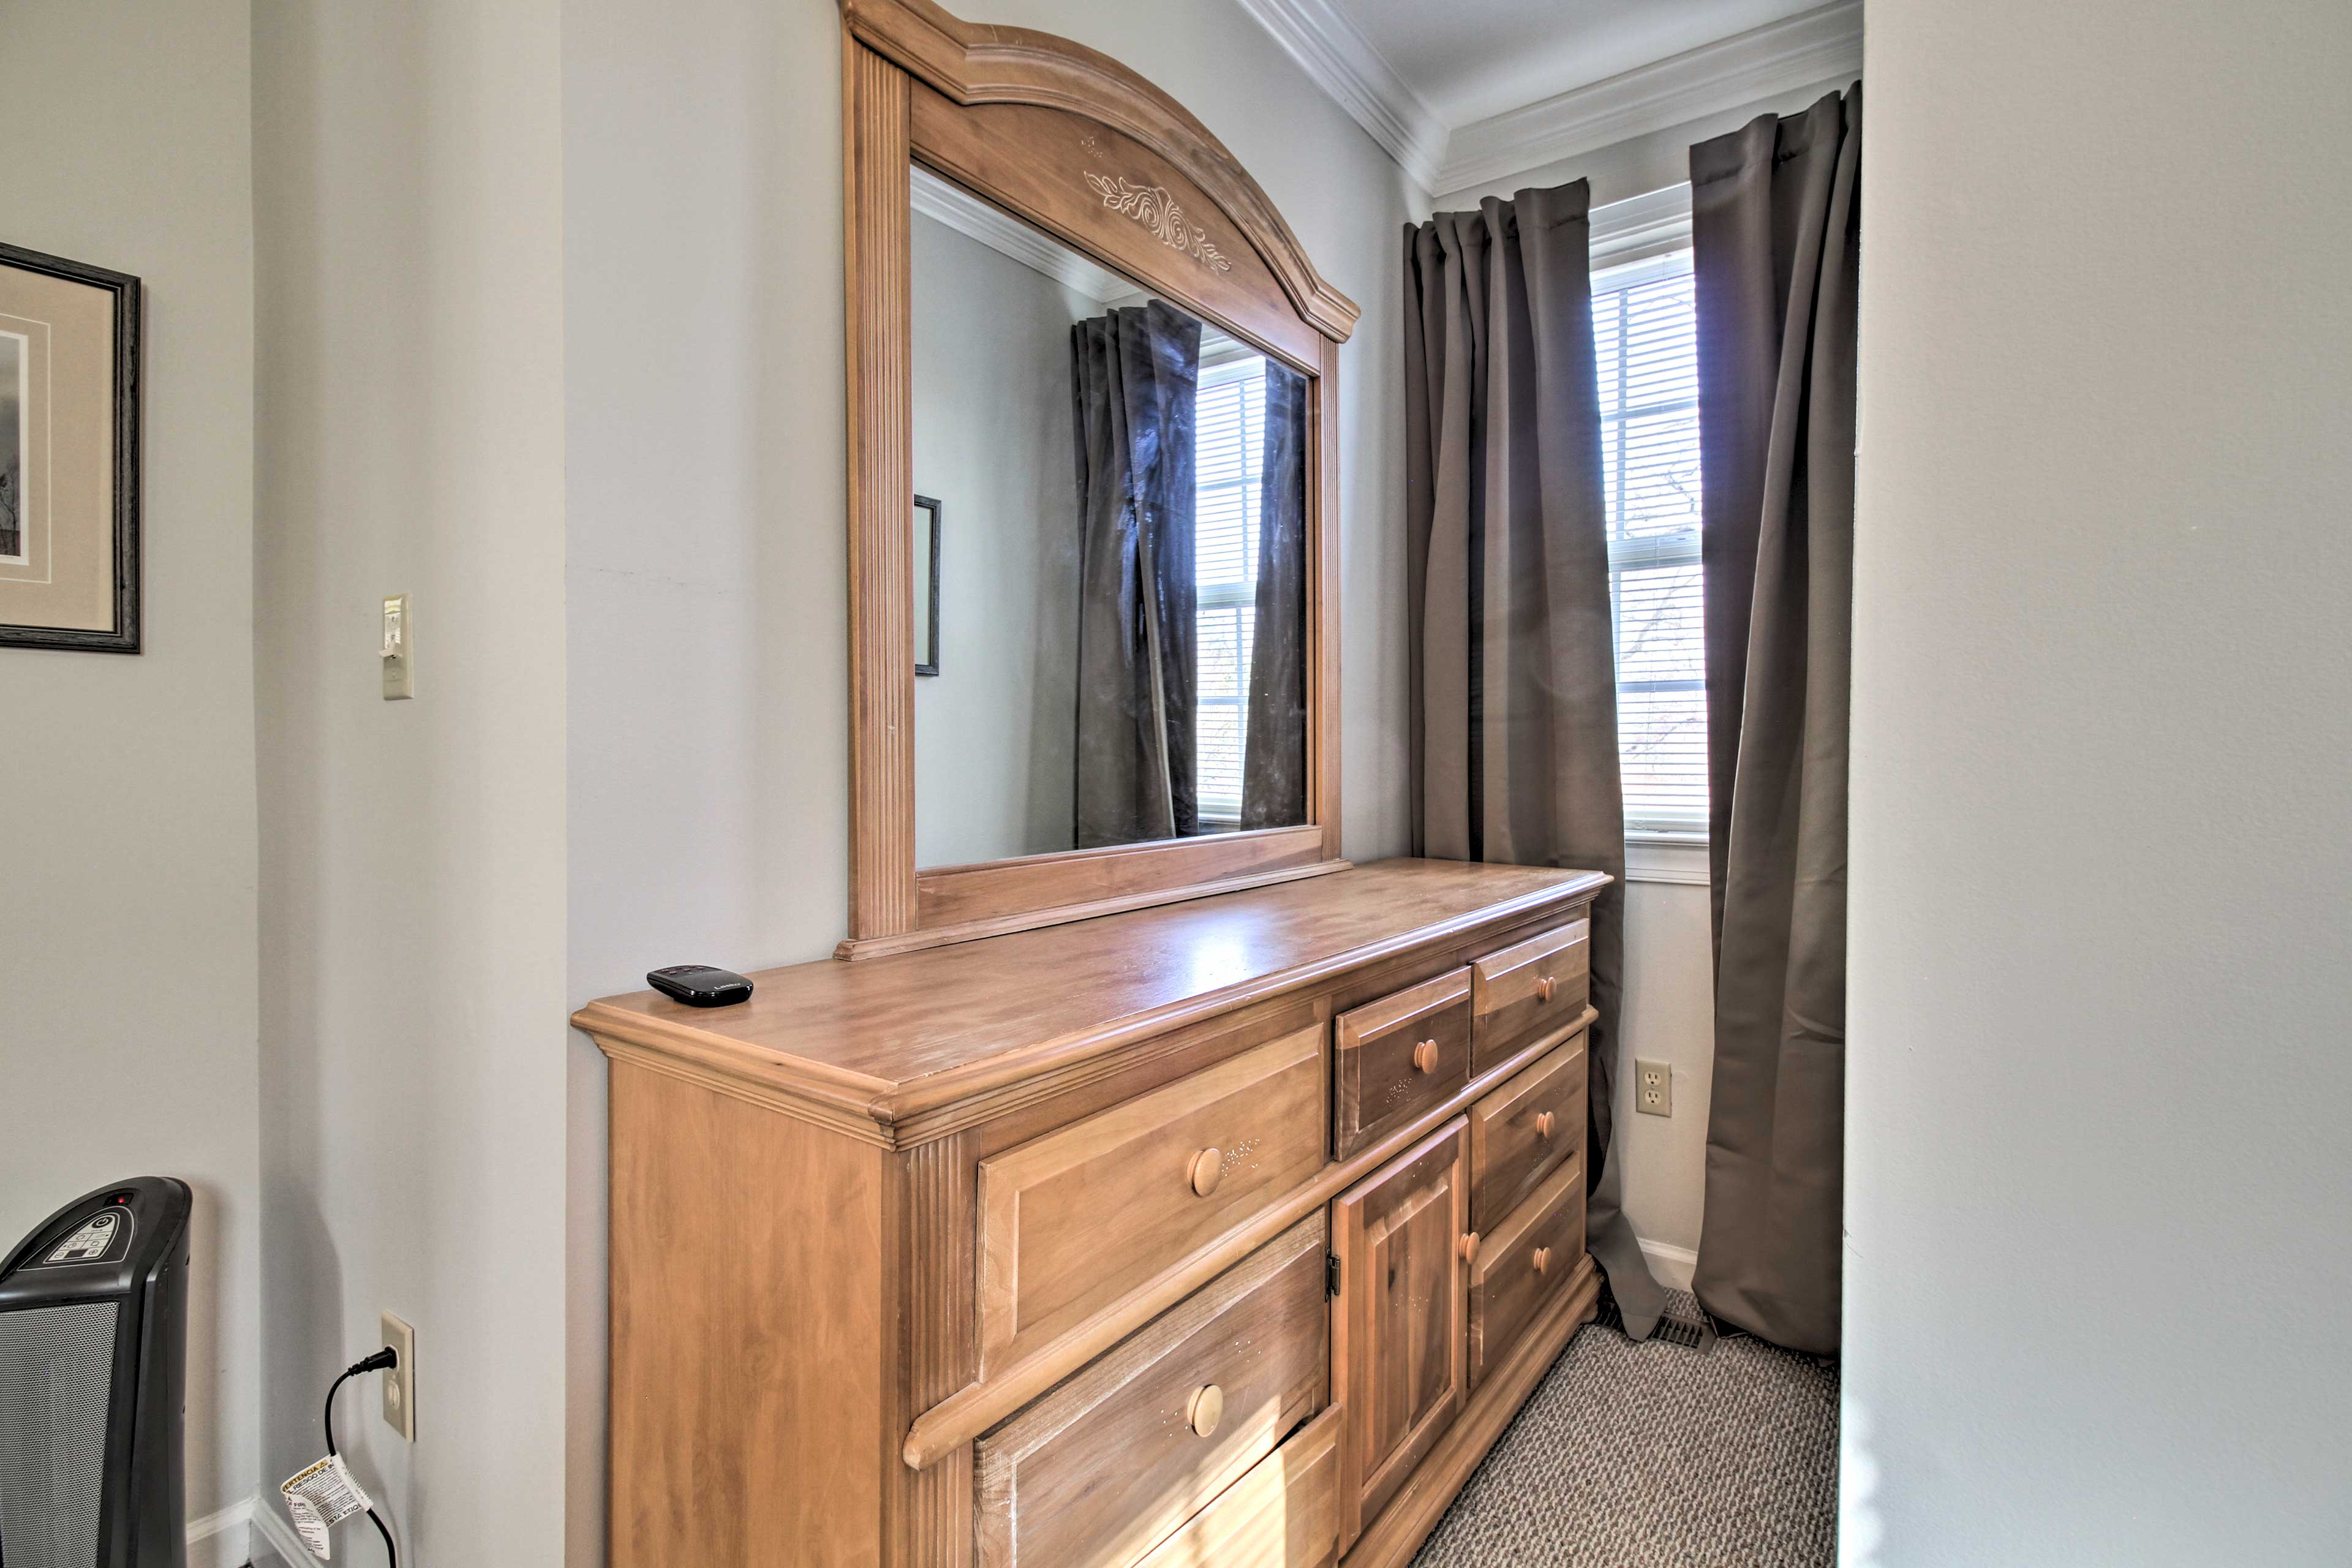 Use the mirror at the dresser to get ready for an exciting night out.